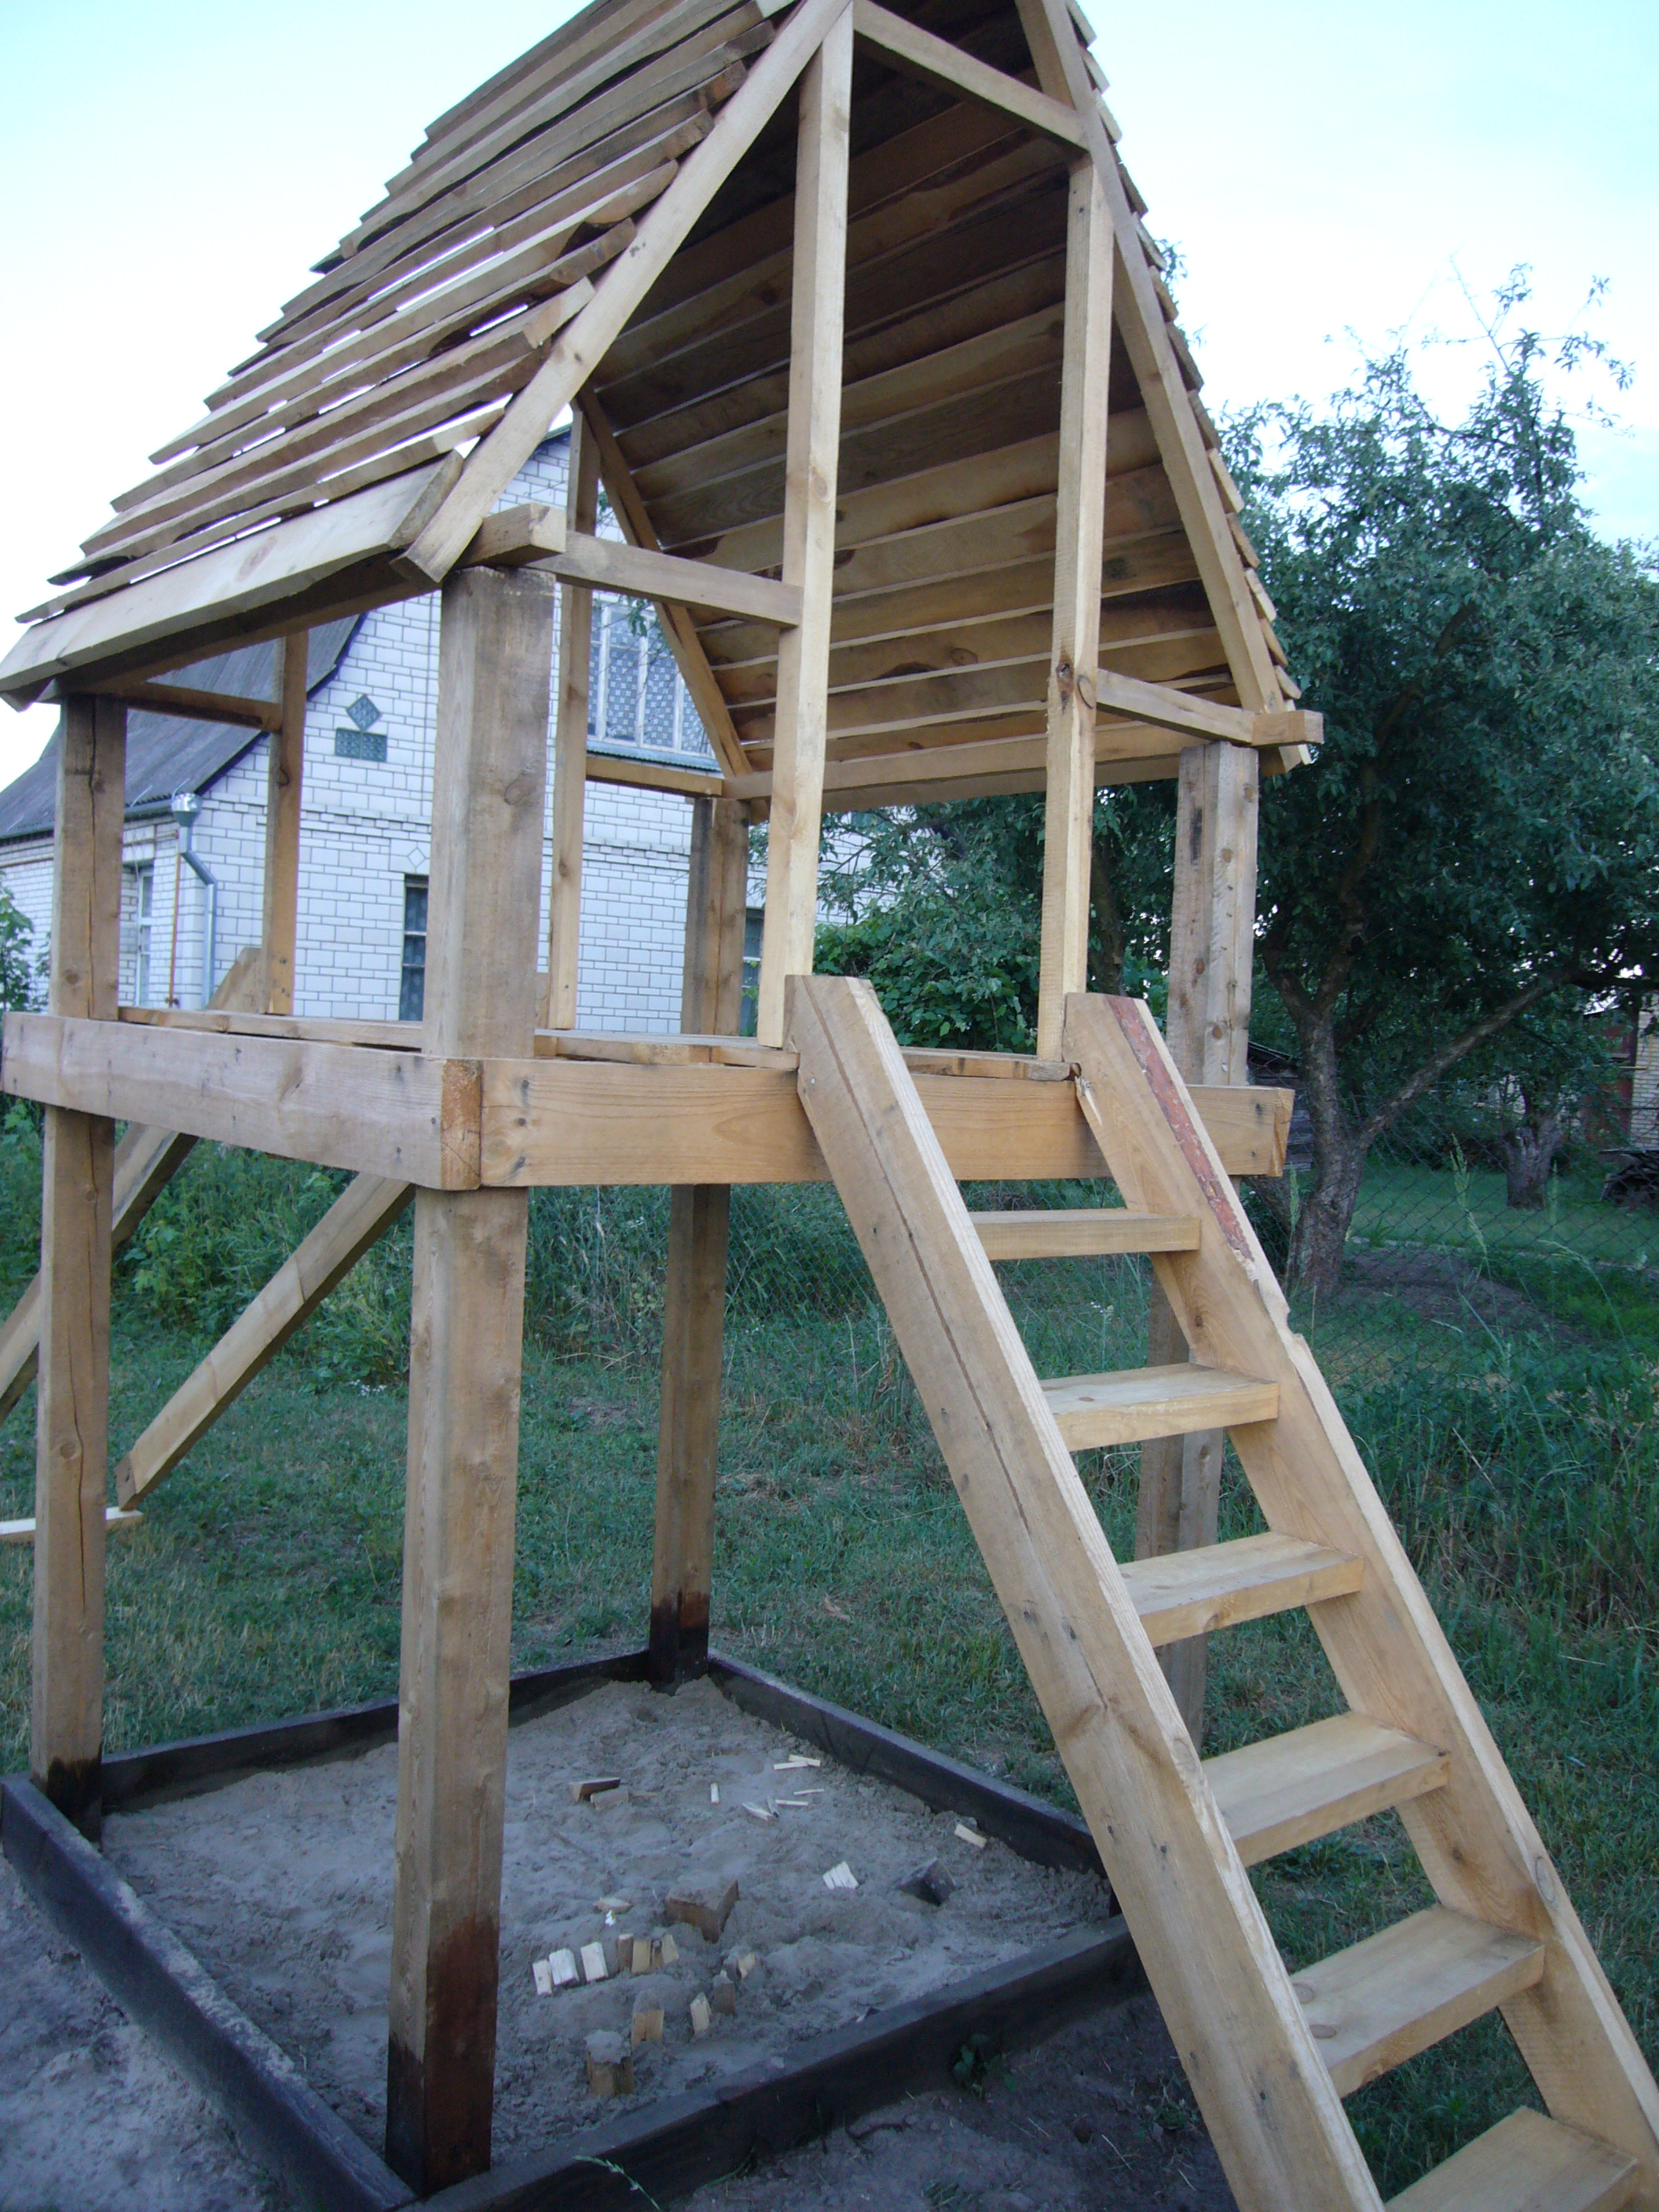 Diy project wood playhouse with slide diy crafts for Diy pool house plans